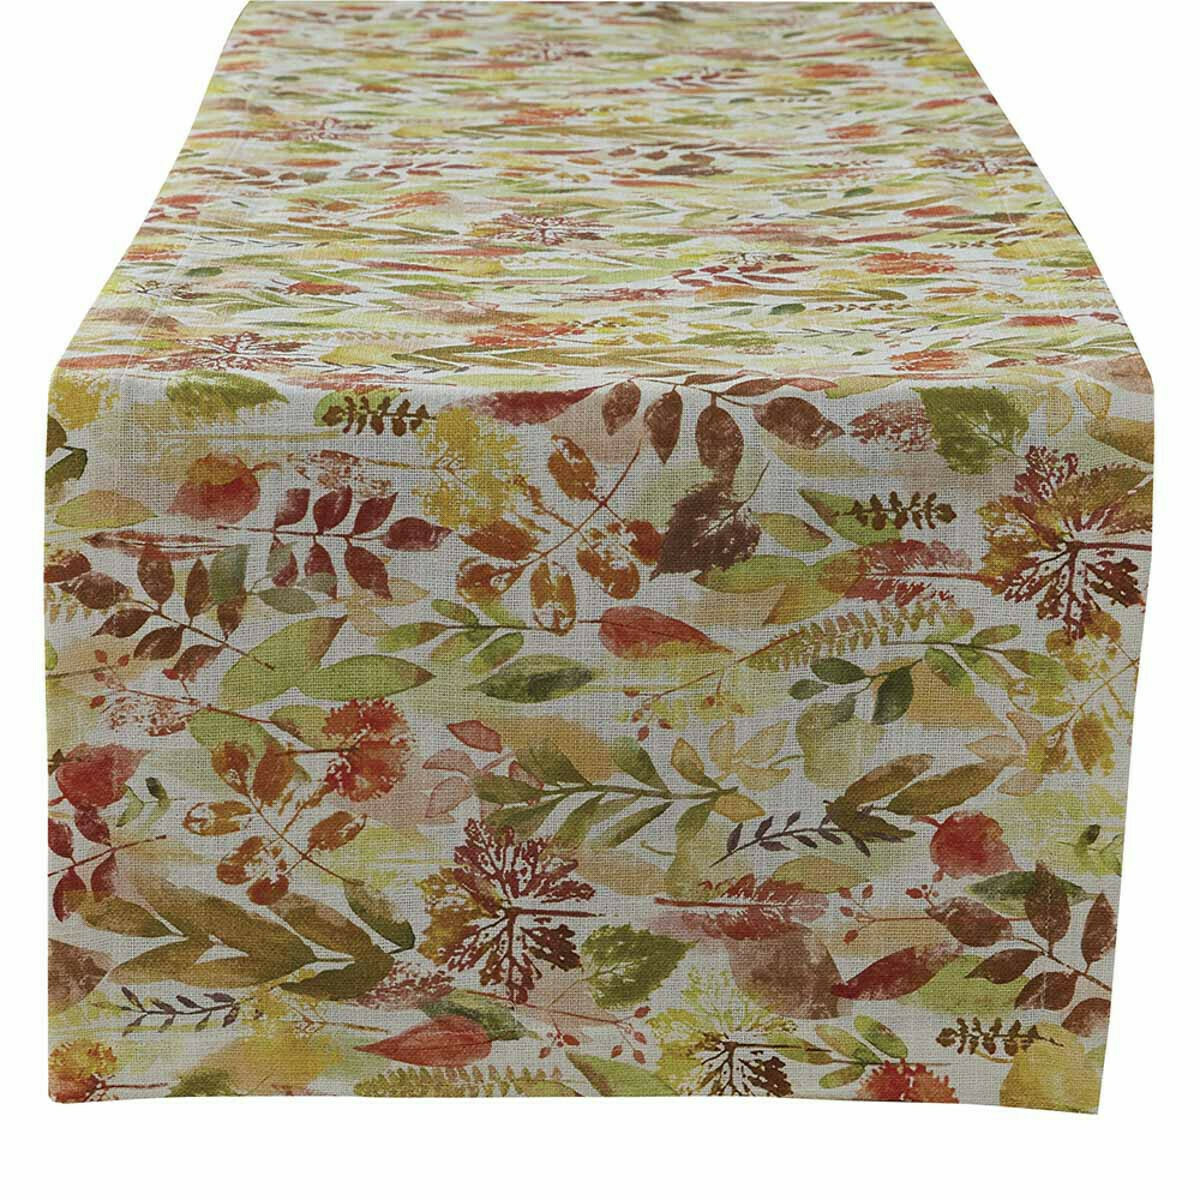 "Botanical Medley 72"" Runner"